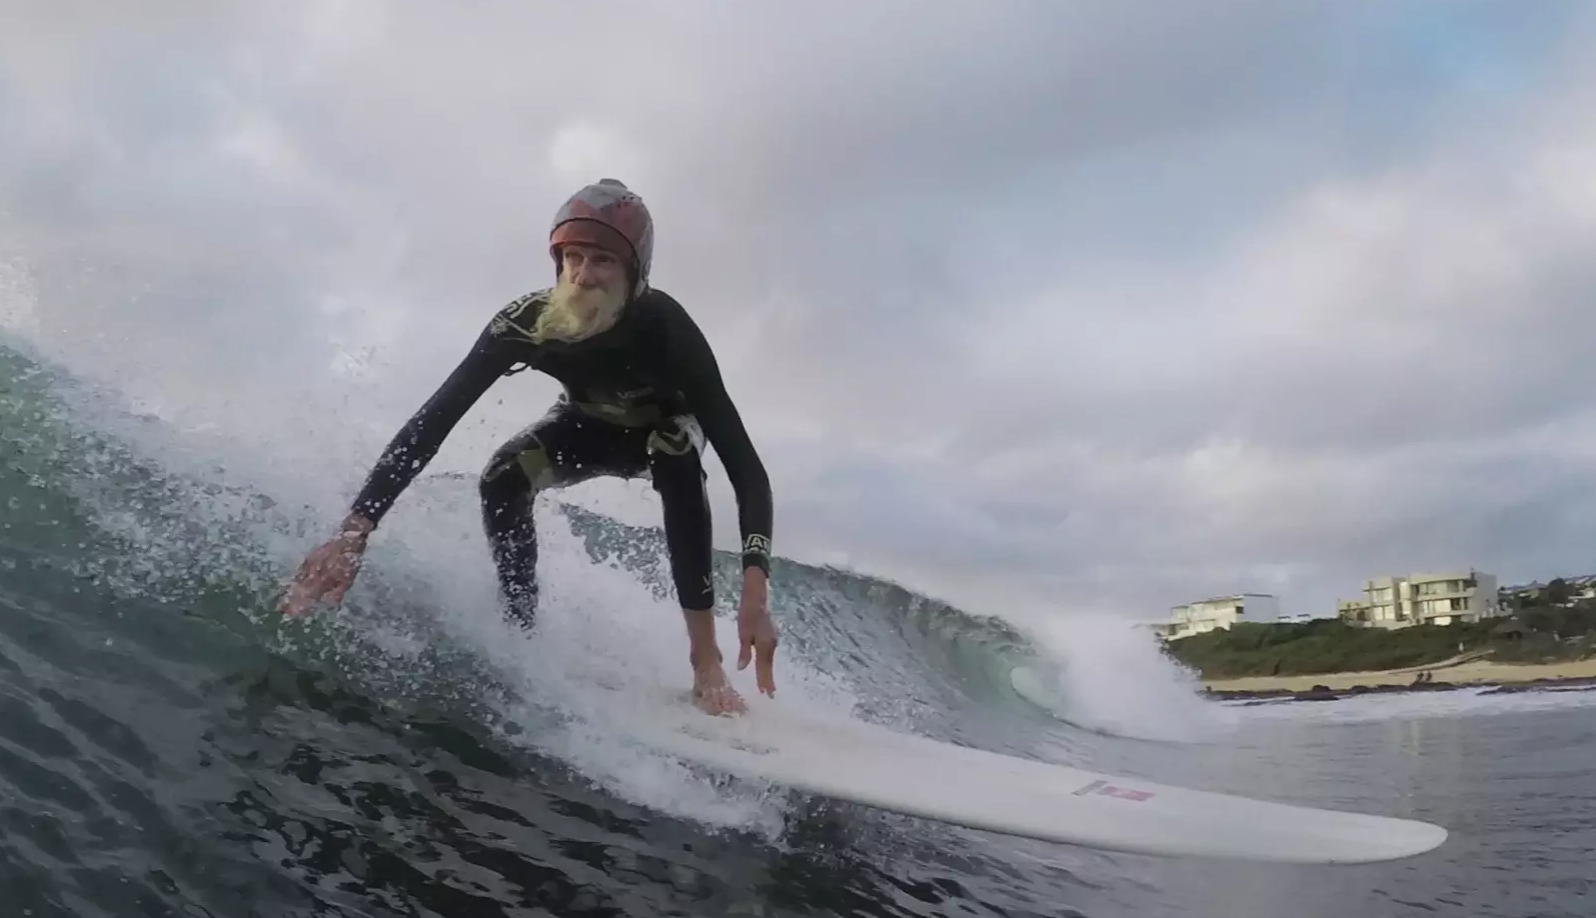 BRUCE GOLD: LAST OF THE GREAT SURFING HIPPIES  Director: Anders Melchior  Running time: 9 mins   Bruce Gold has managed to survive for almost 50 years in Jeffreys Bay without having a job. He is among the last of a dying breed of   surfers  who have dedicated their entire lives to riding waves.